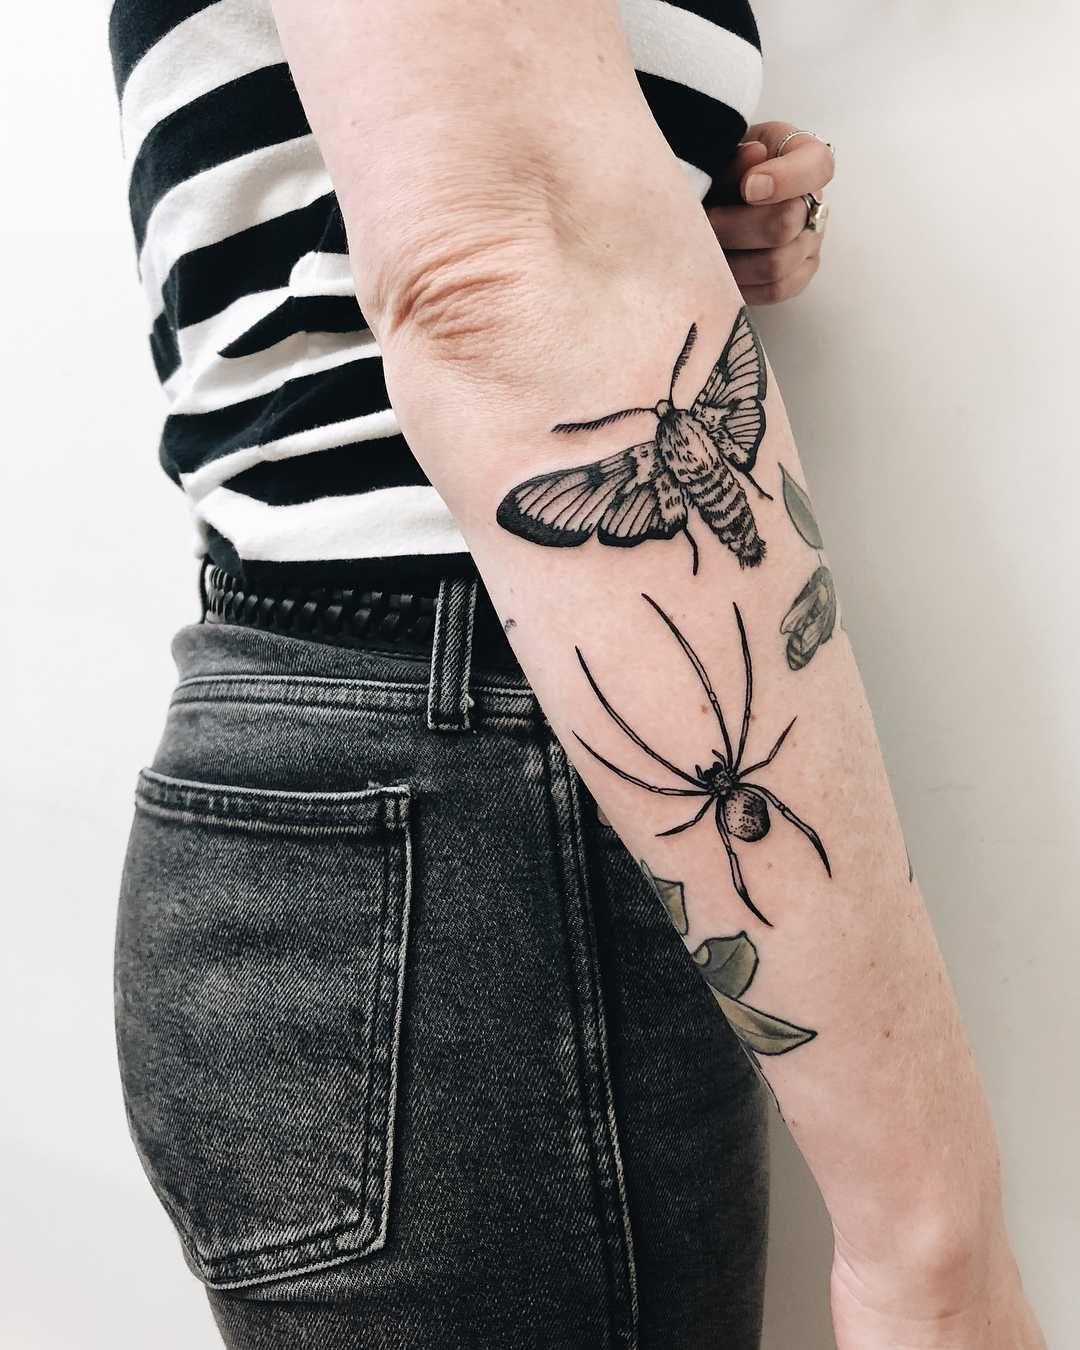 Spider and moth tattoo by Finley Jordan - Tattoogrid.net